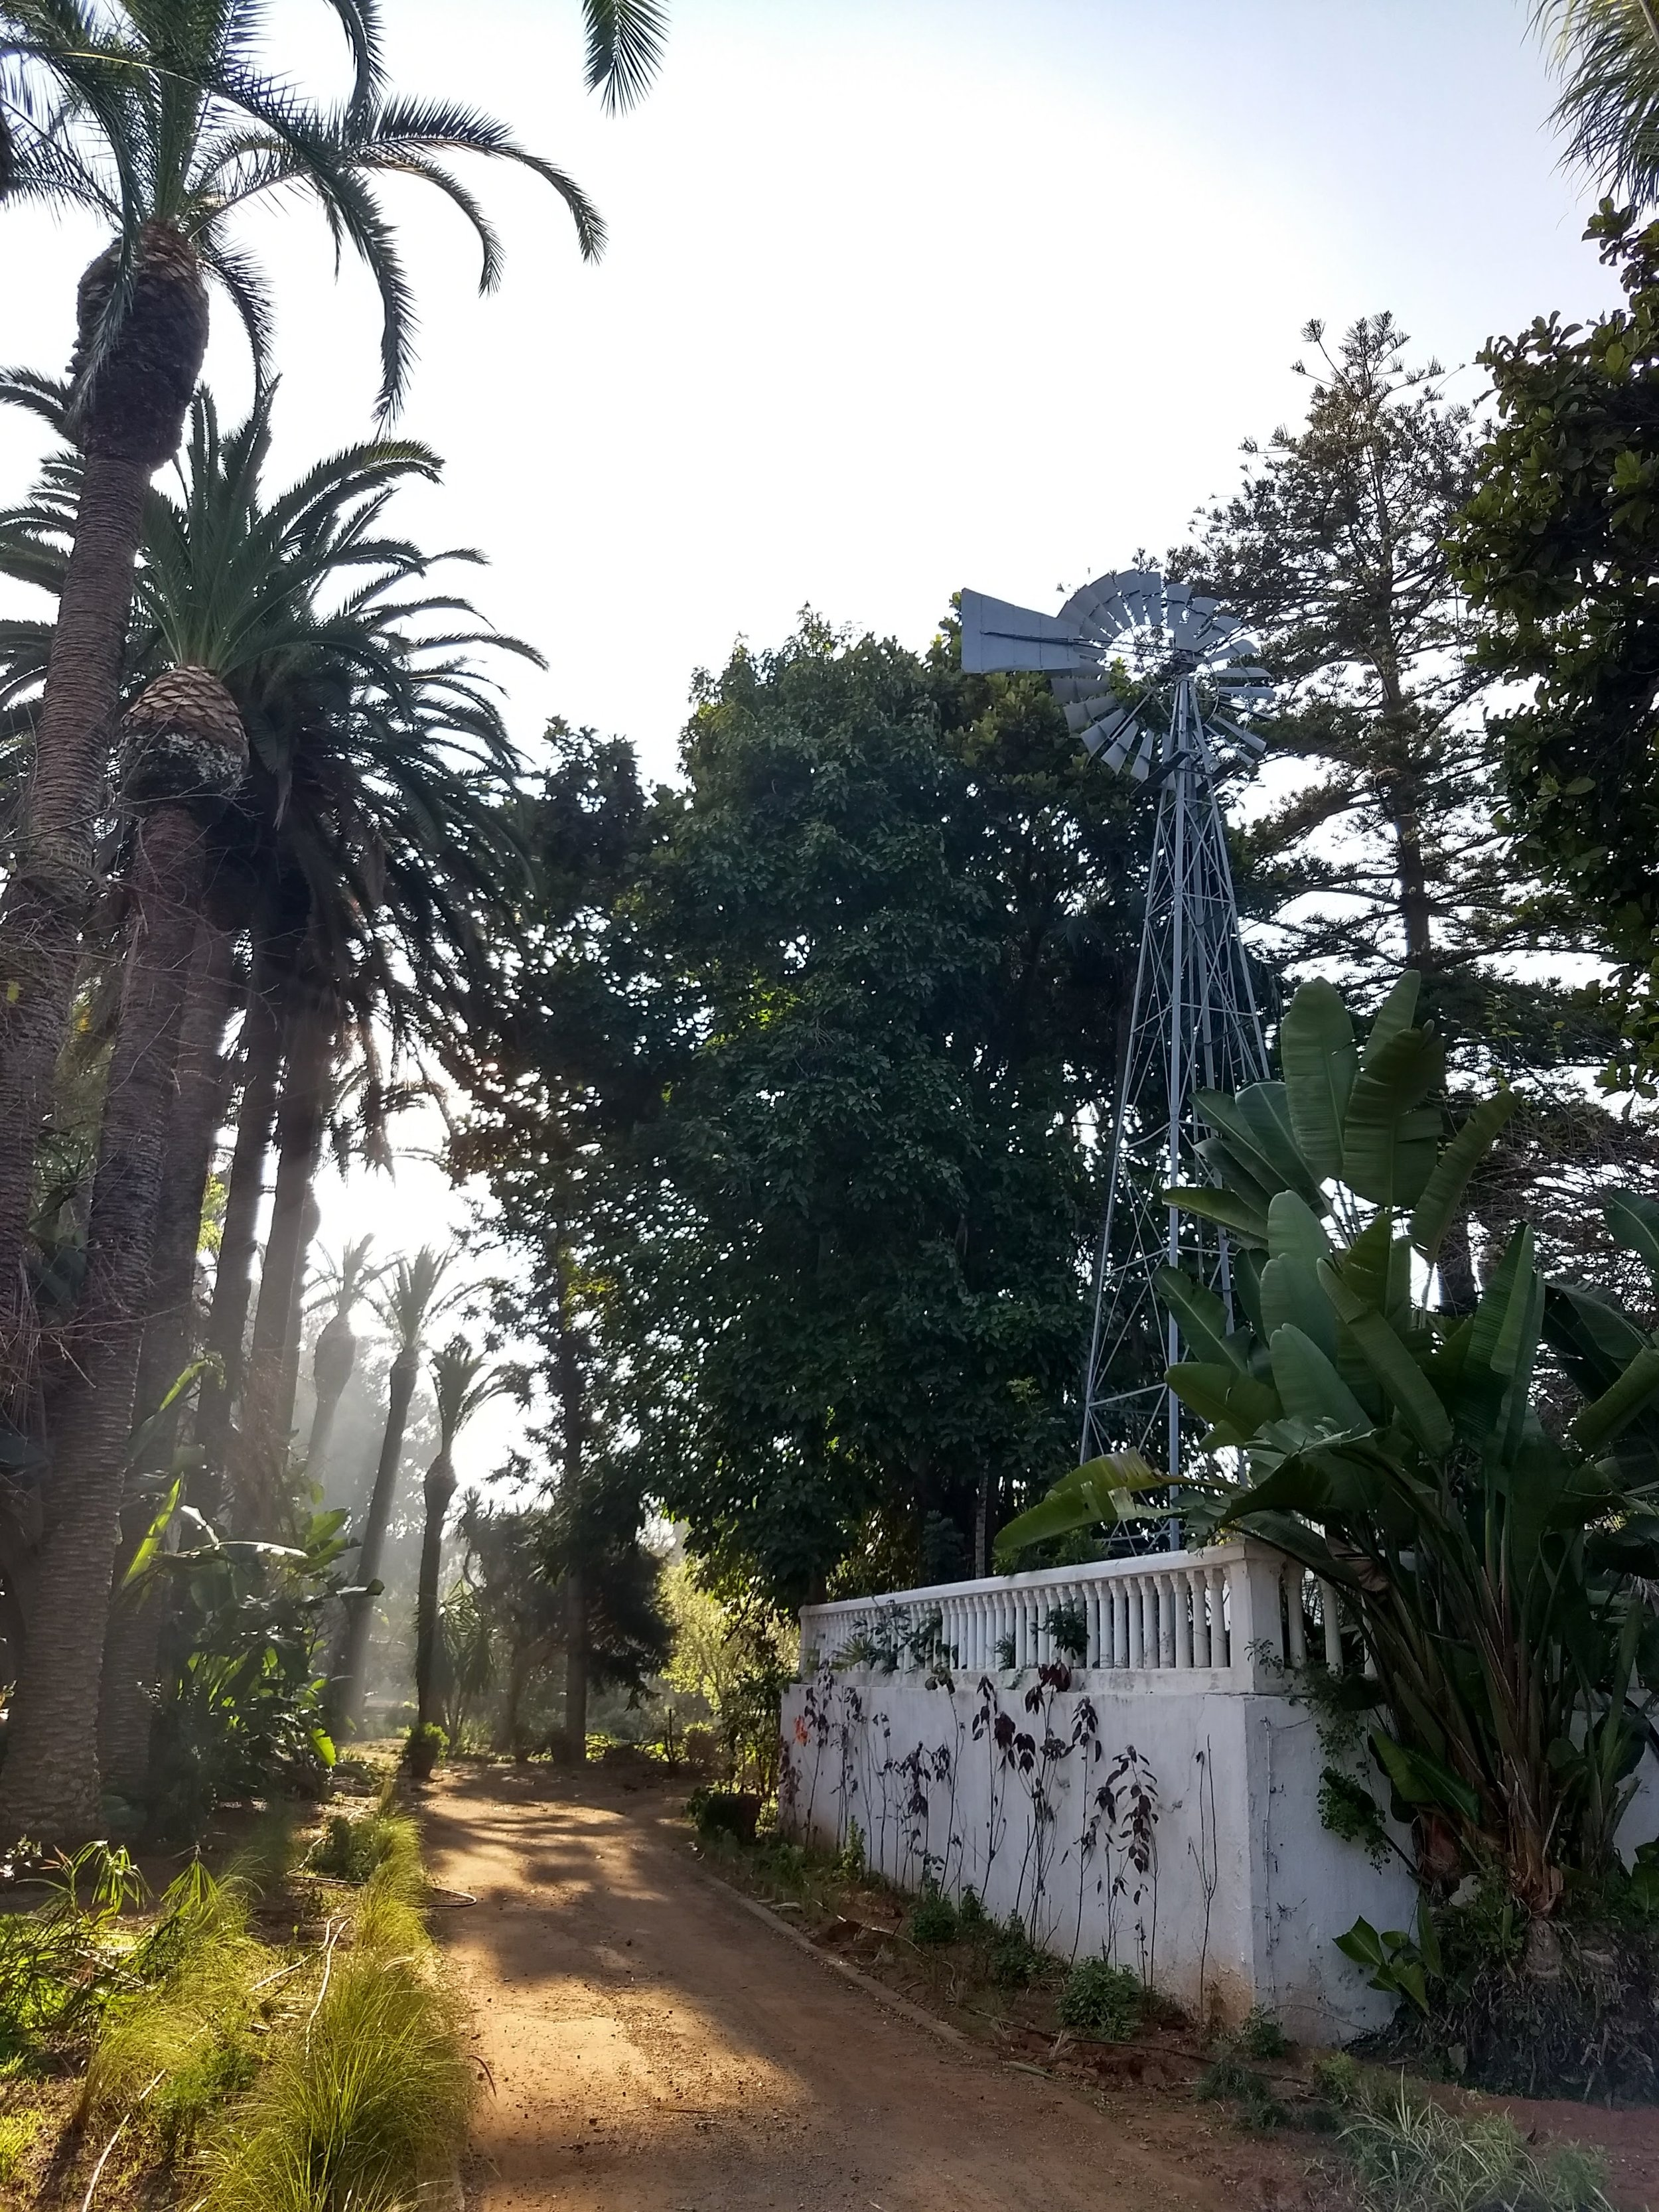 Even in the middle of winter, Rabat was full of green, growing plants. Photo Credit: Liora Silkes, 2018.